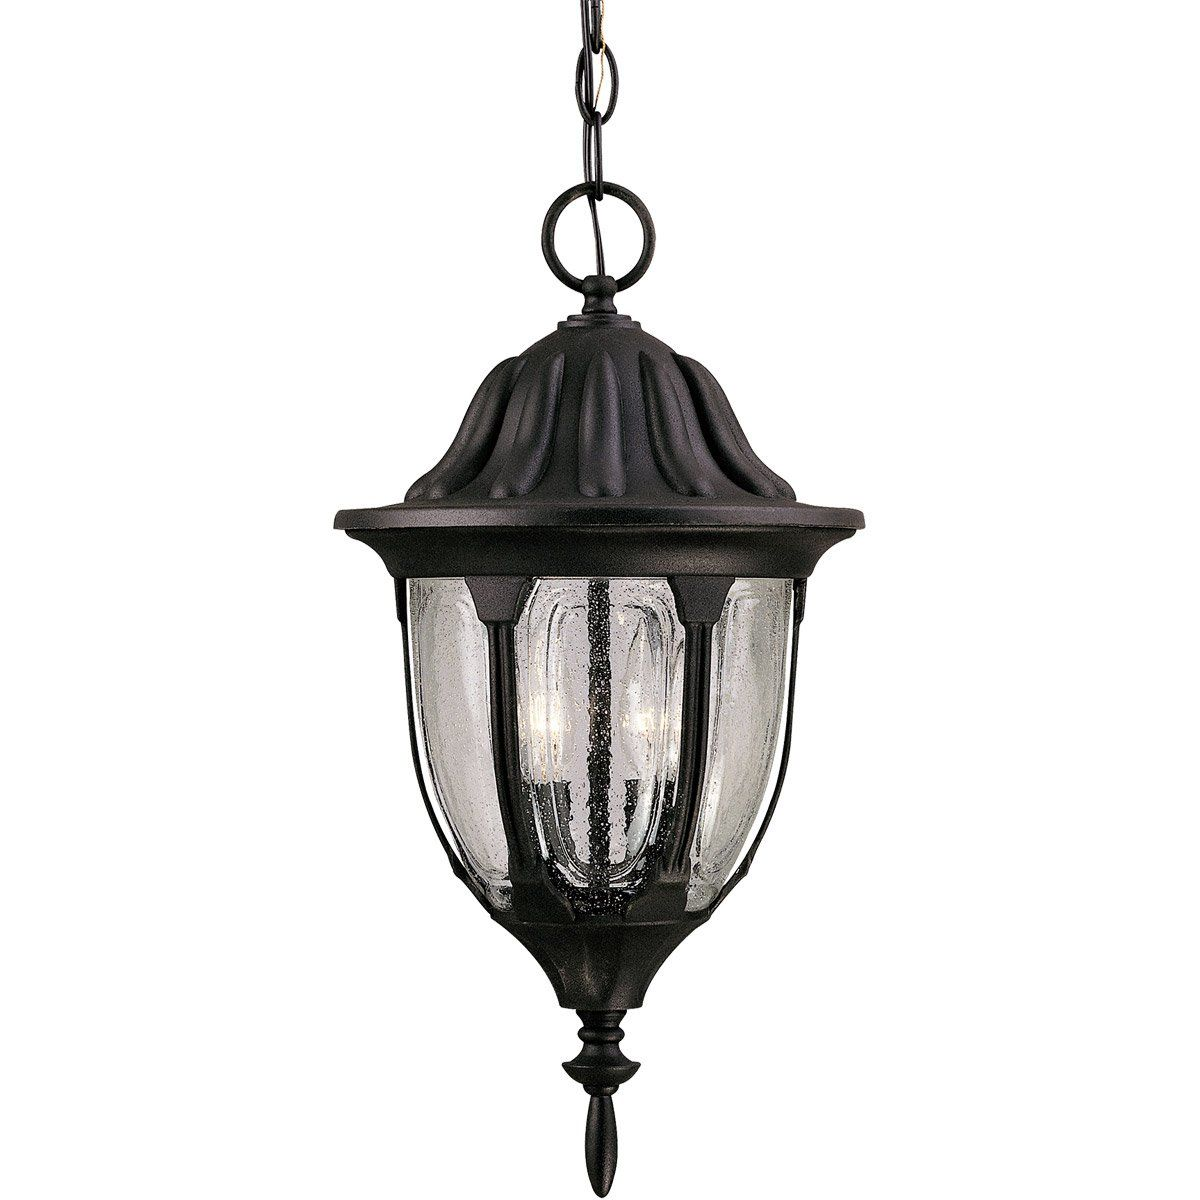 Savoy House Lighting 5 1502 Bk Tudor 2 Light 9 Inch Black Outdoor